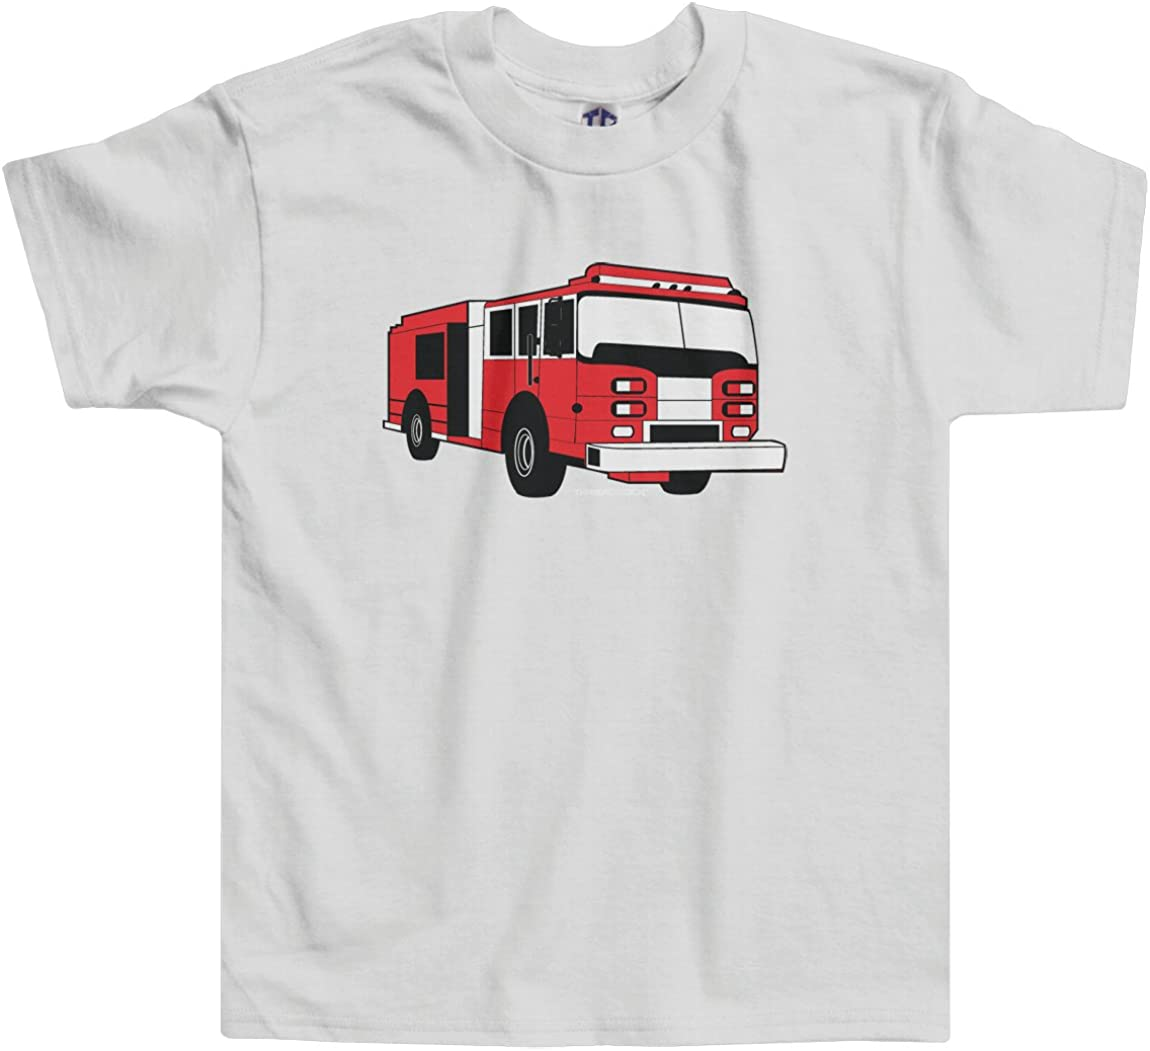 18Months-6Years Fire engine boys blue t shirt